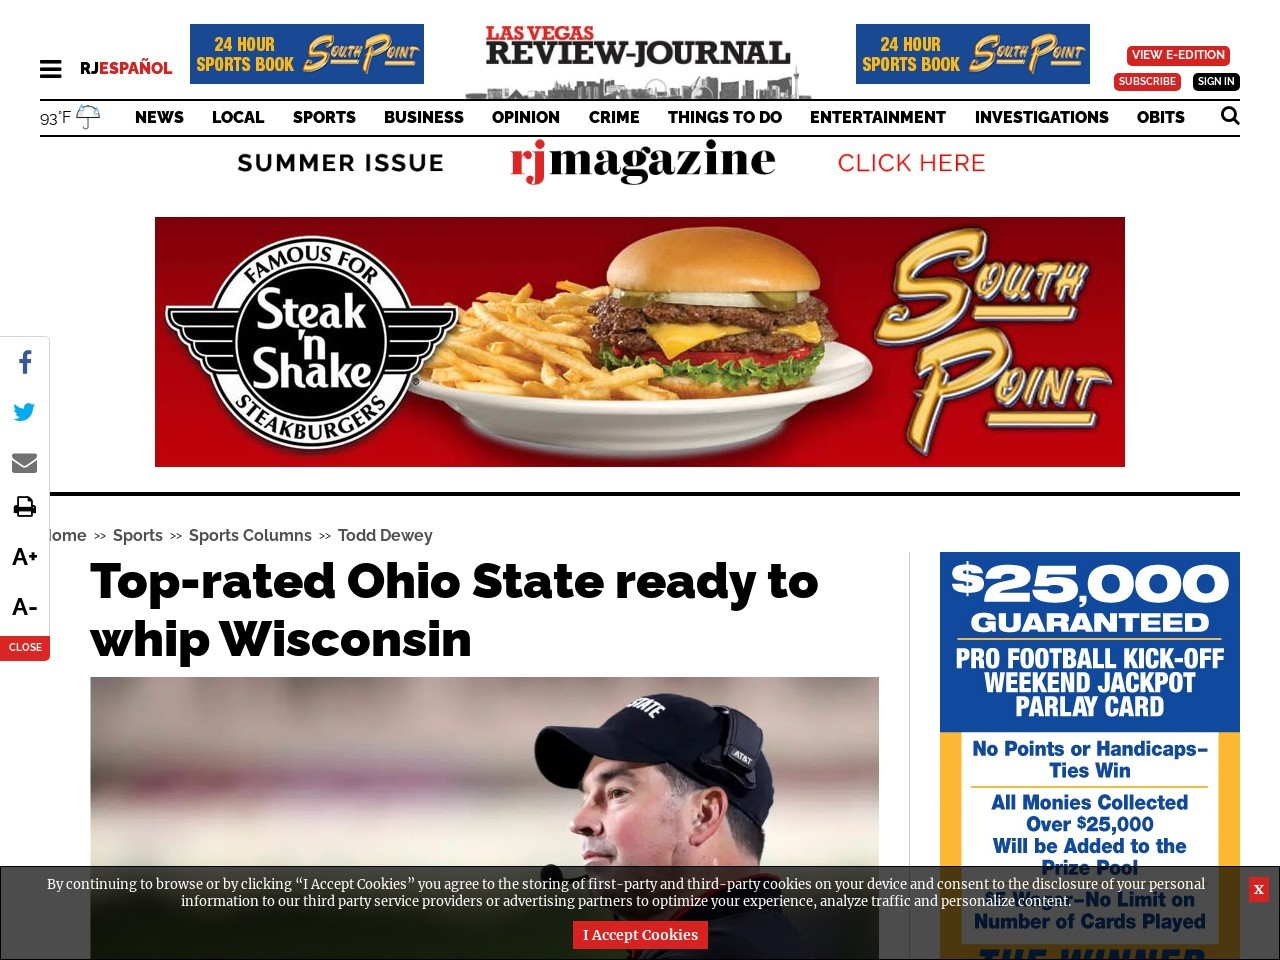 Top-rated Ohio State ready to whip Wisconsin